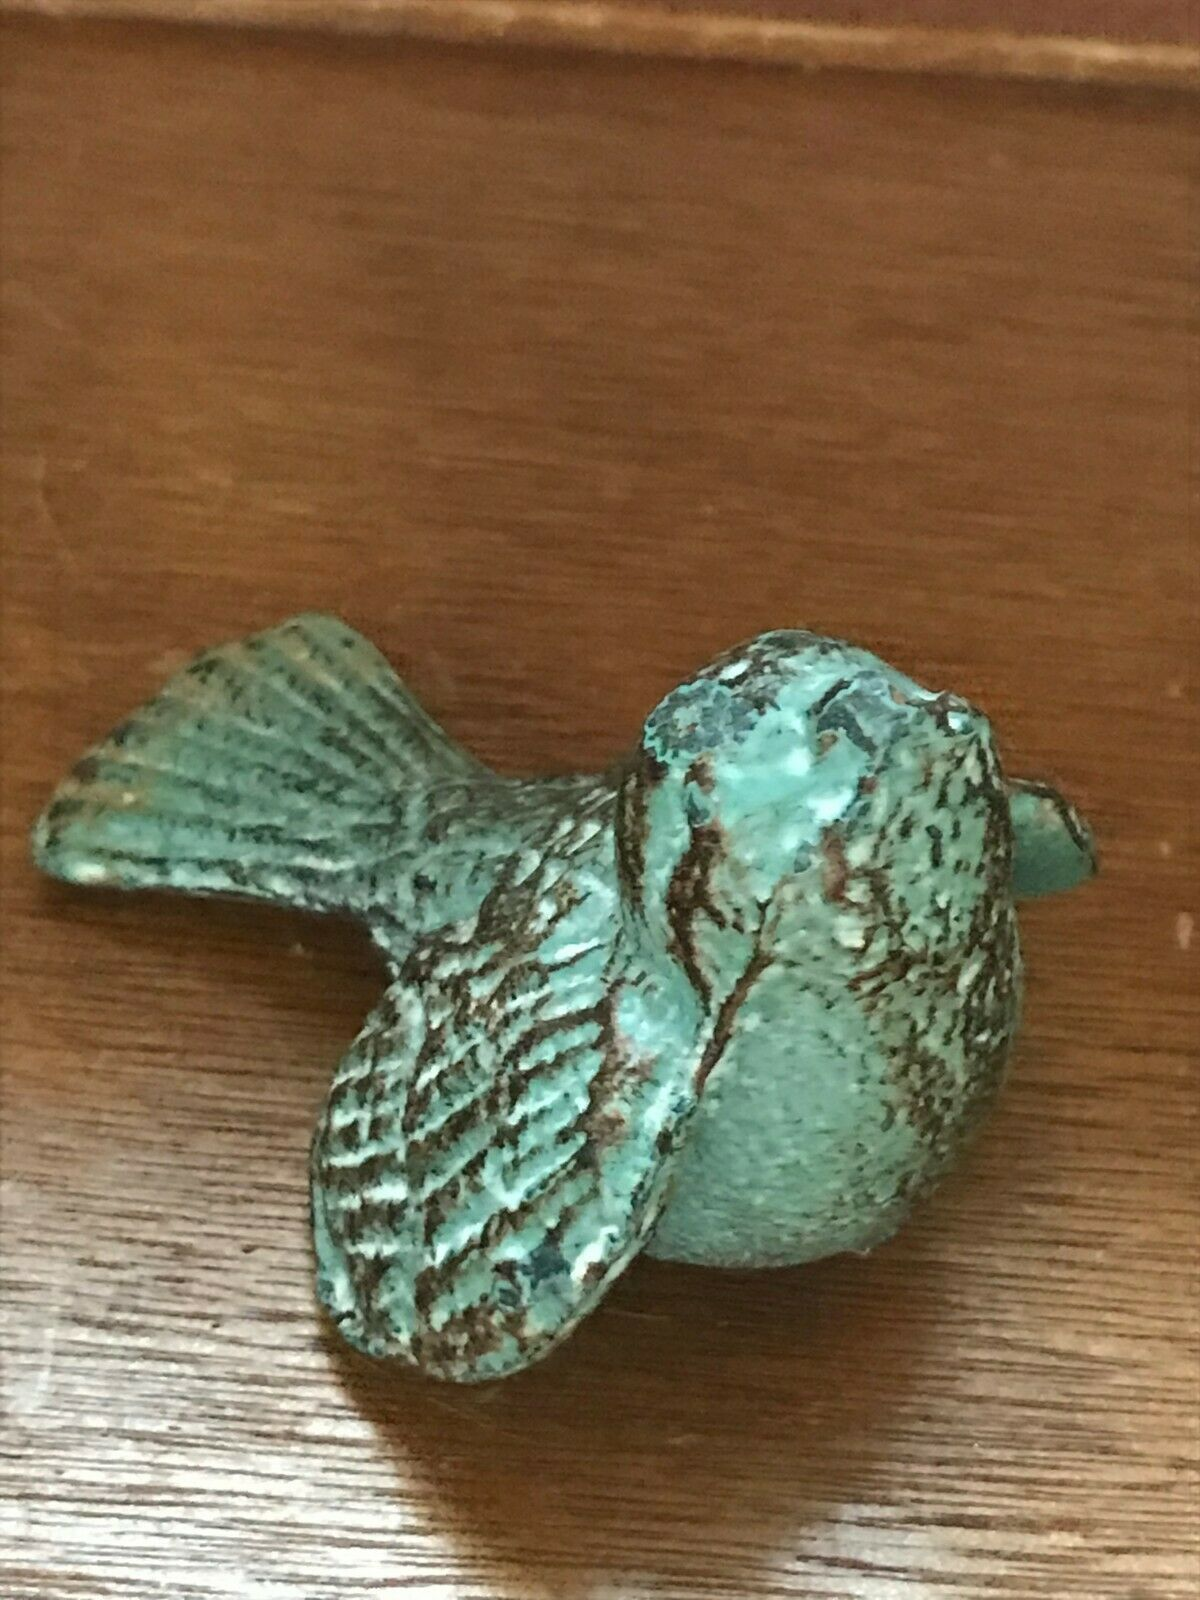 Estate Small Green & Brown Rustic Metal Bird Birdie Figurine  – 2.25 inches tall image 2